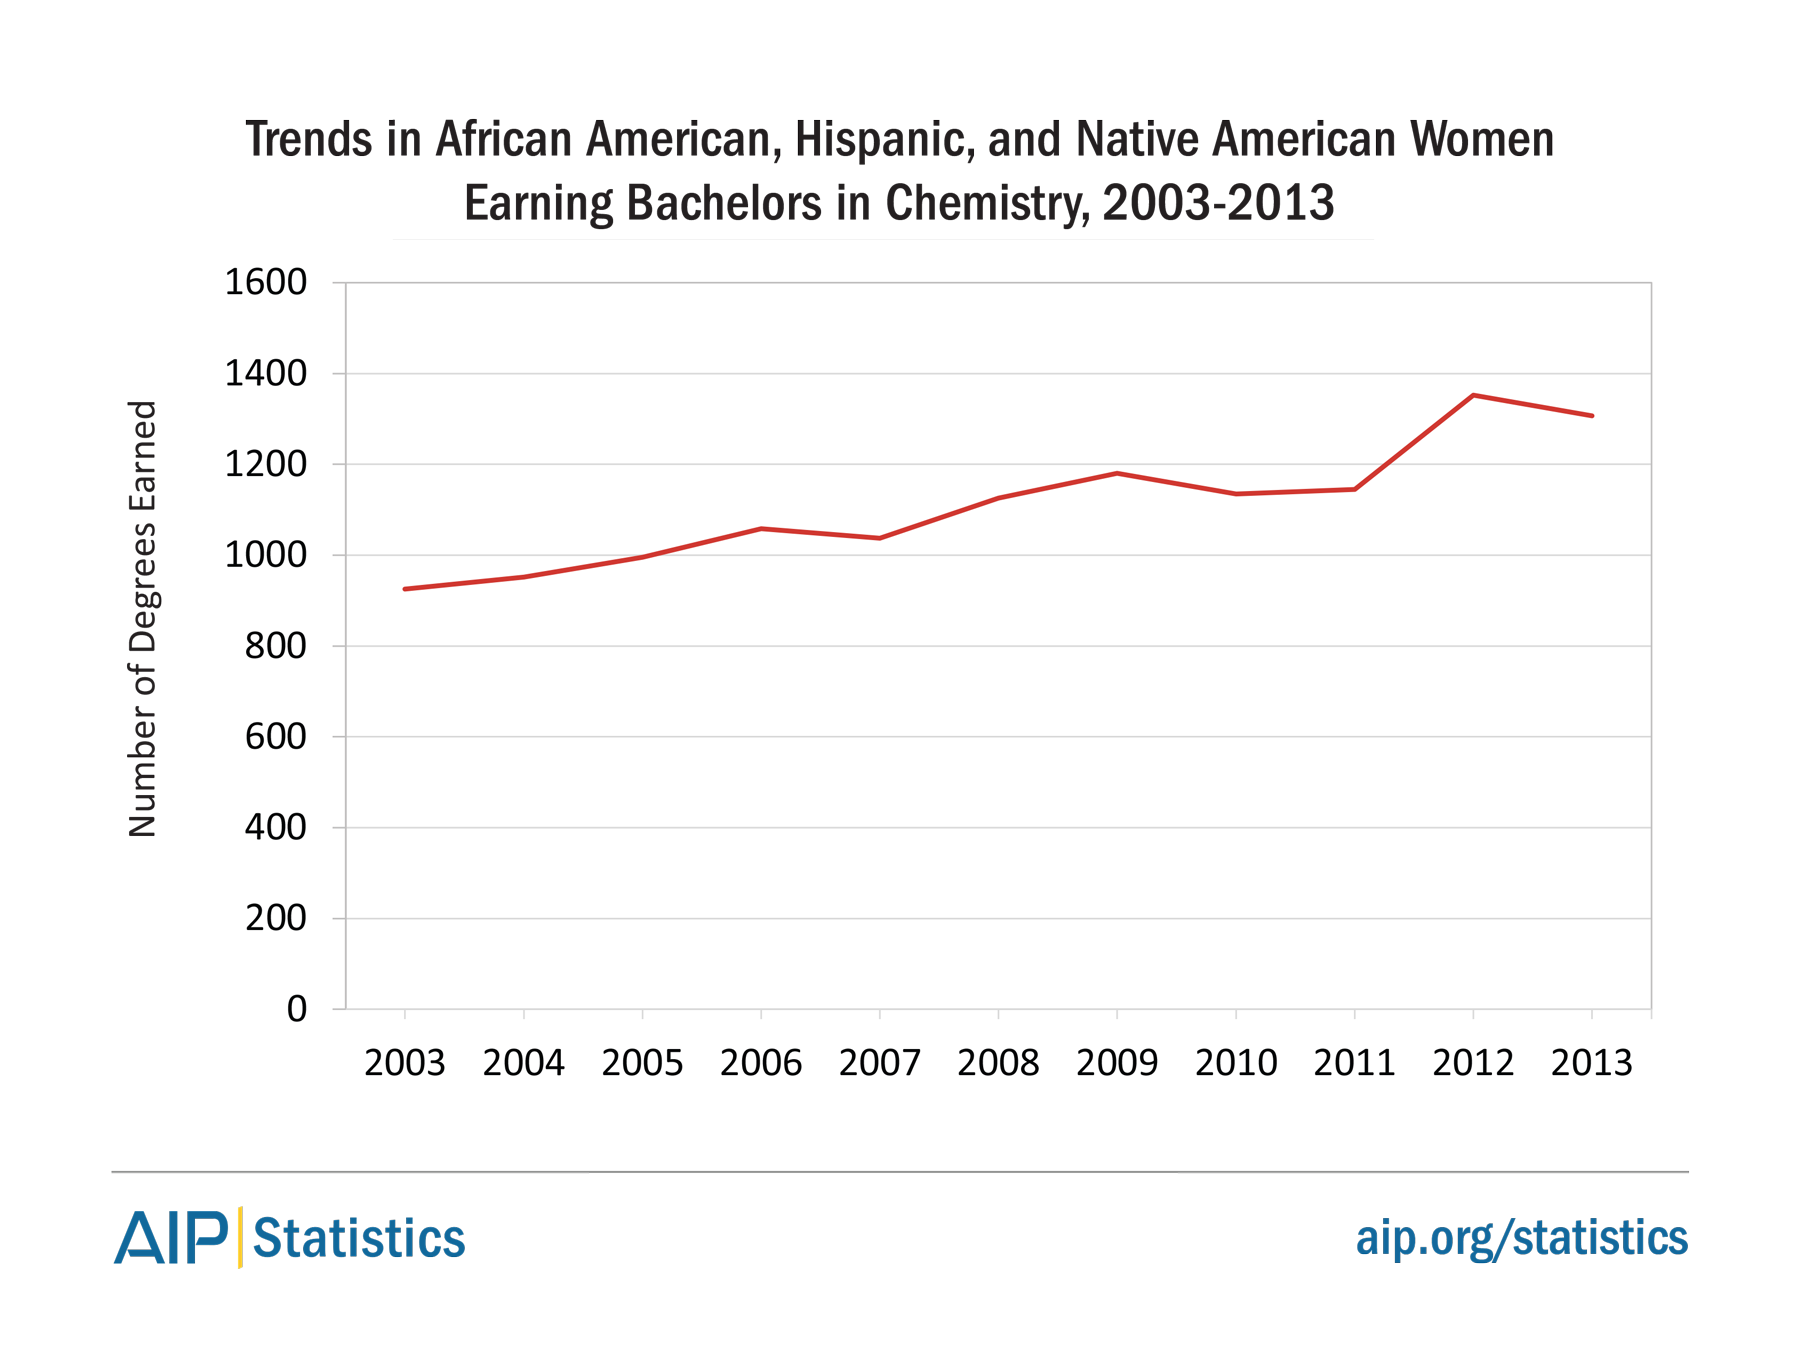 Trends in African American, Hispanic, and Native American Women Earning Bachelors in Chemistry, 2003-2013